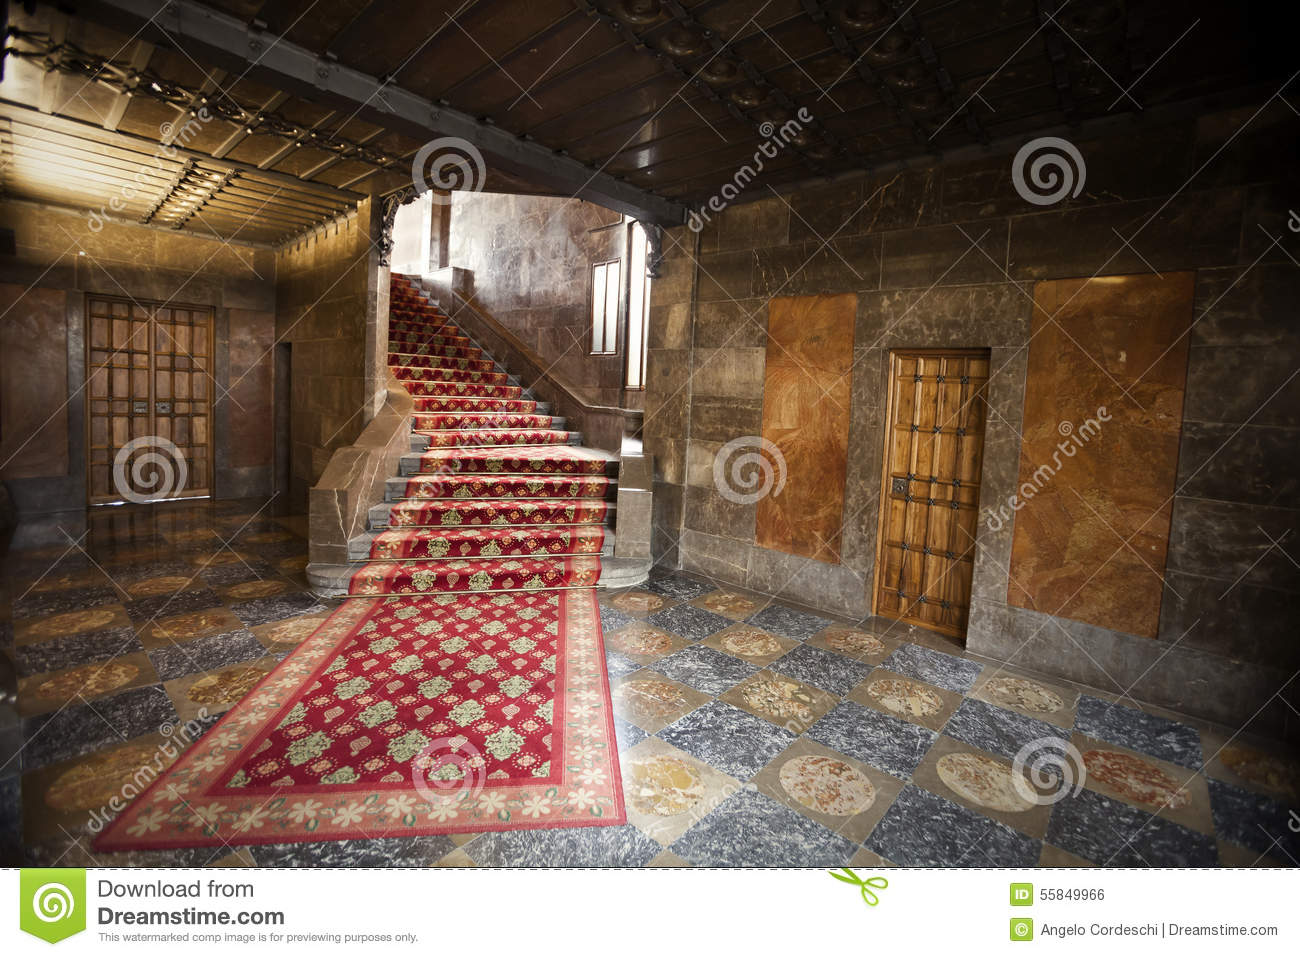 Interior Of An Old Spanish House With Red Carpet Stairs And Doors